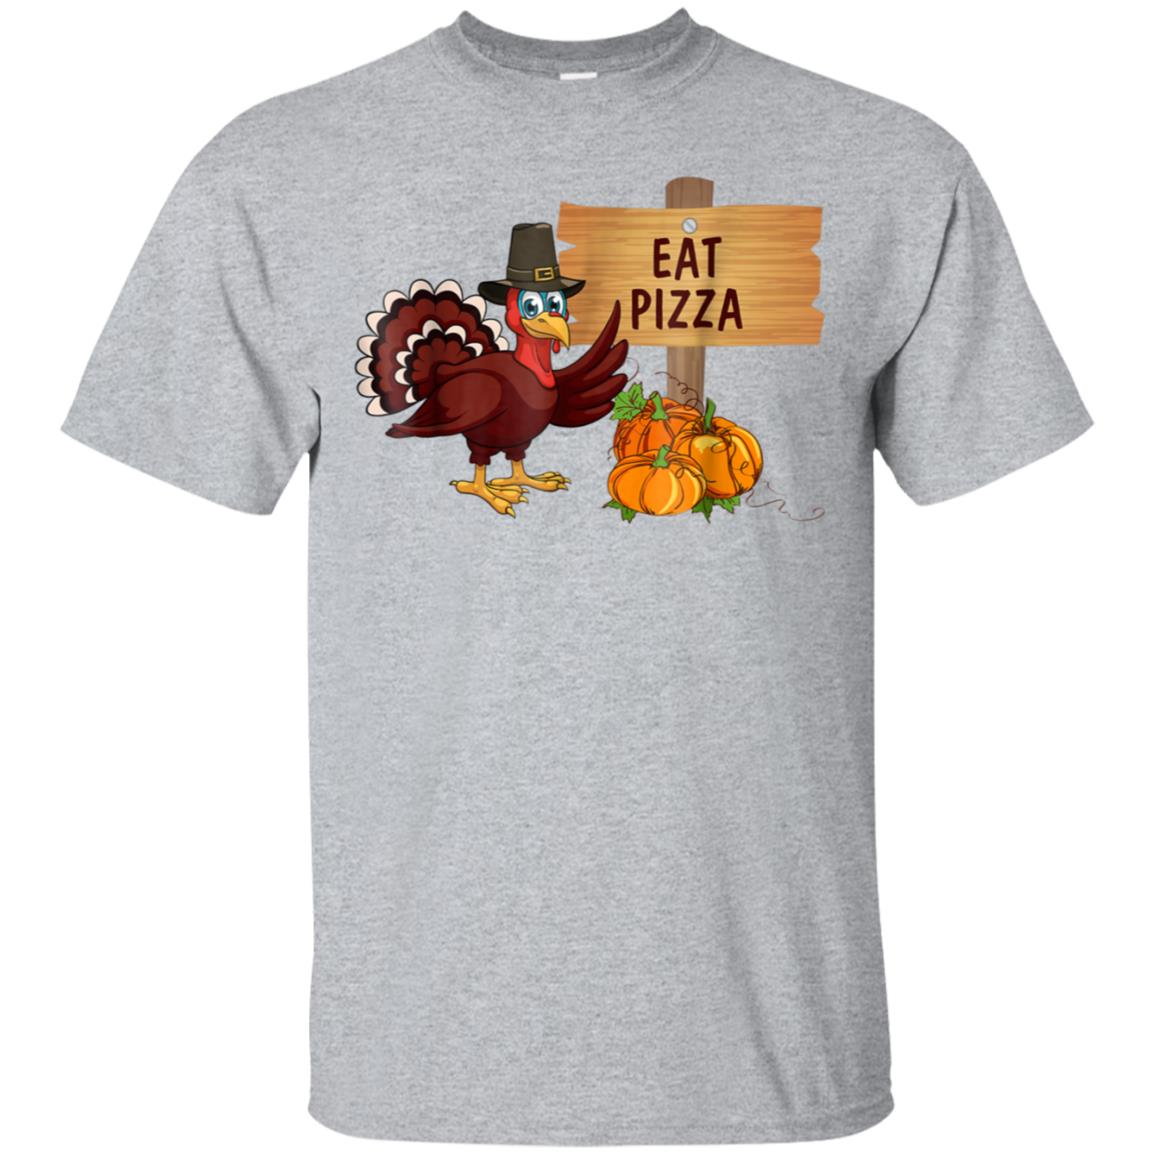 Turkey Eat Pizza Funny Thanksgiving T-Shirt Kids Adult Day 99promocode